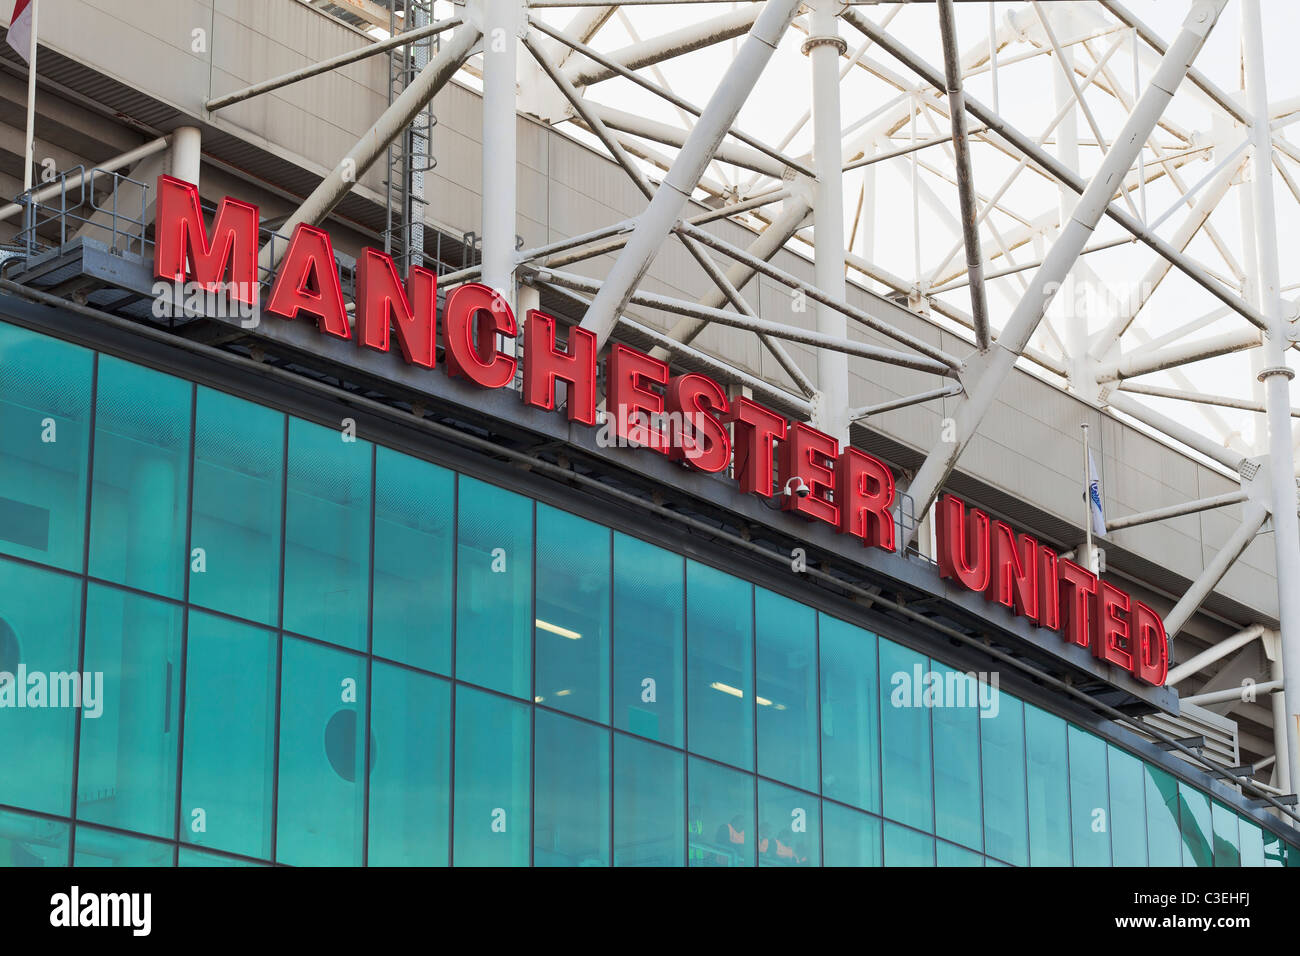 Outside Old Trafford football stadium, Manchester, England - Stock Image